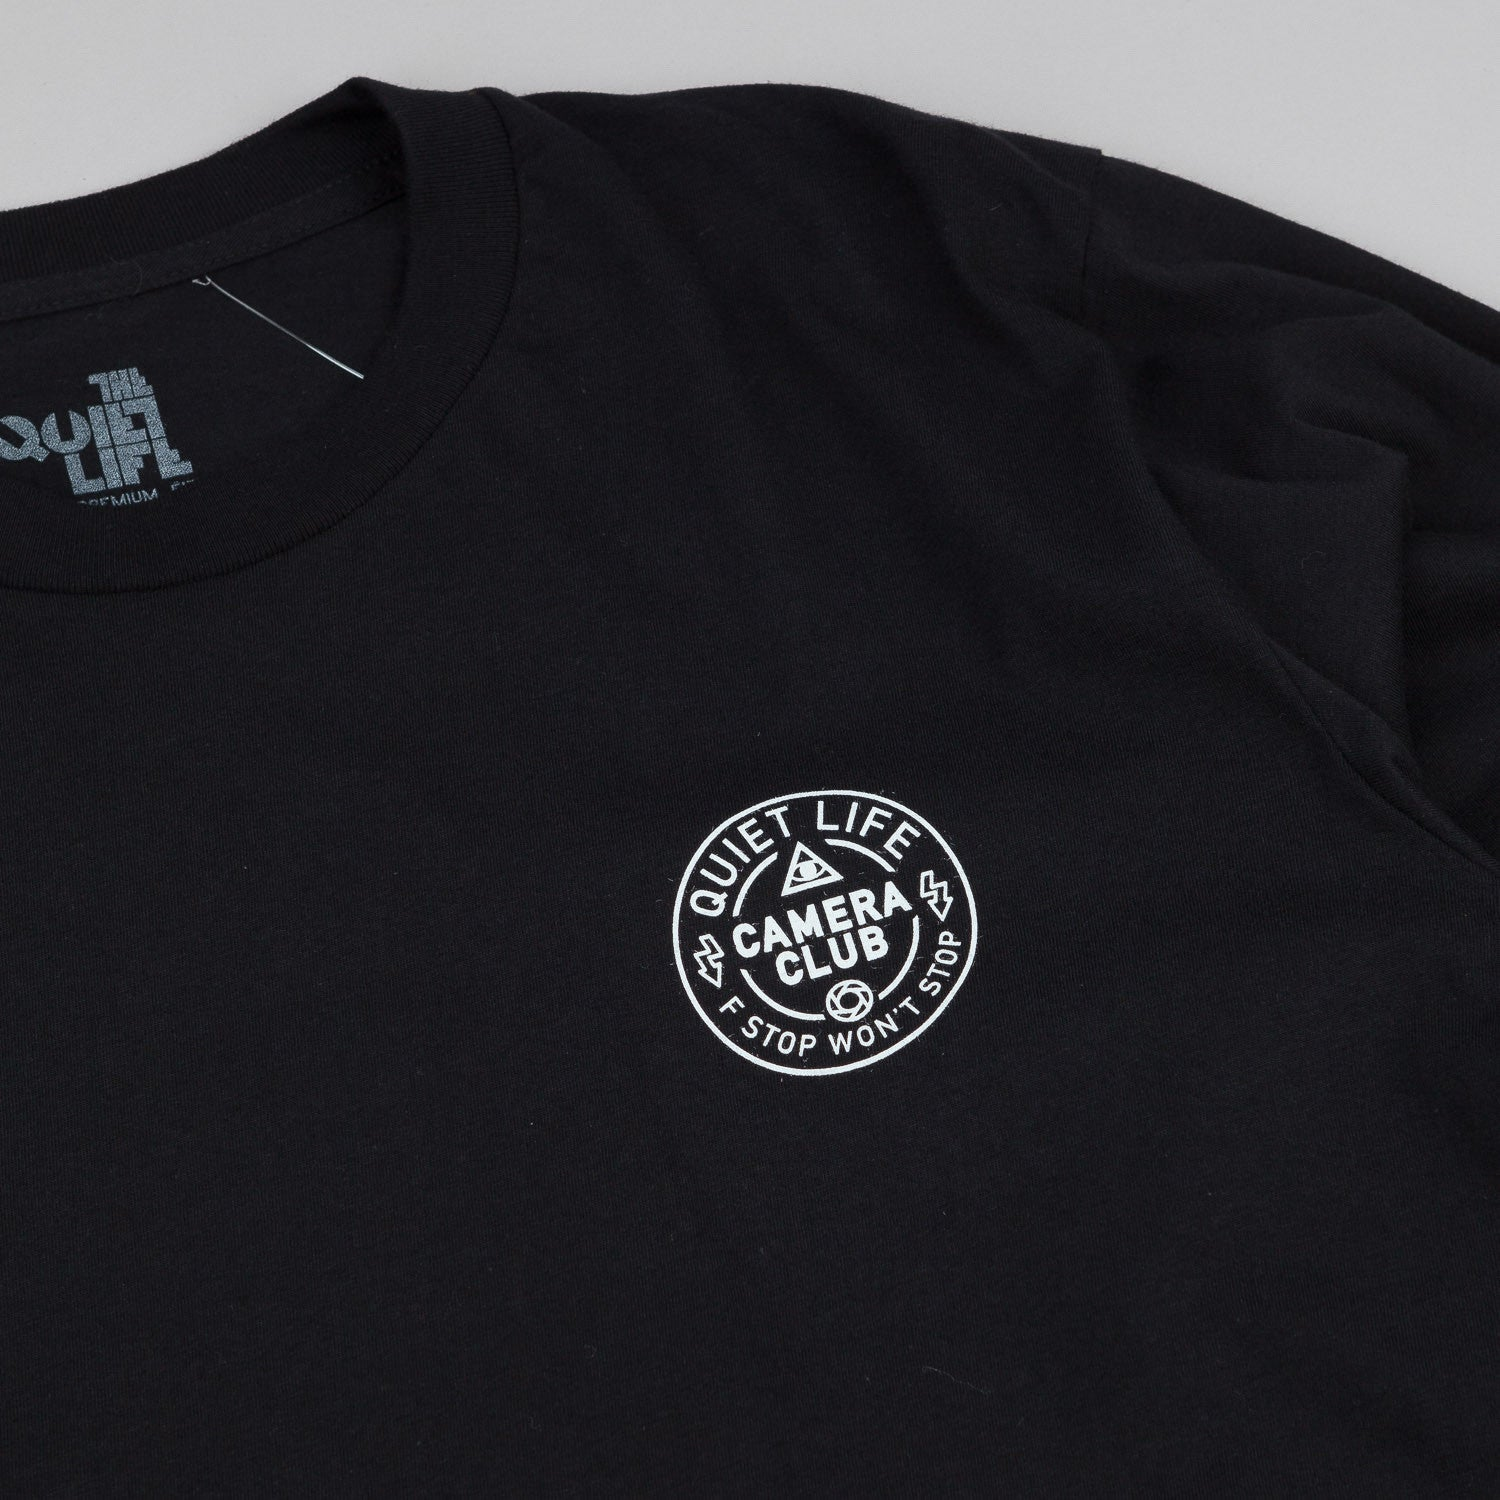 The Quiet Life Won't Stop L/S T-Shirt - Black